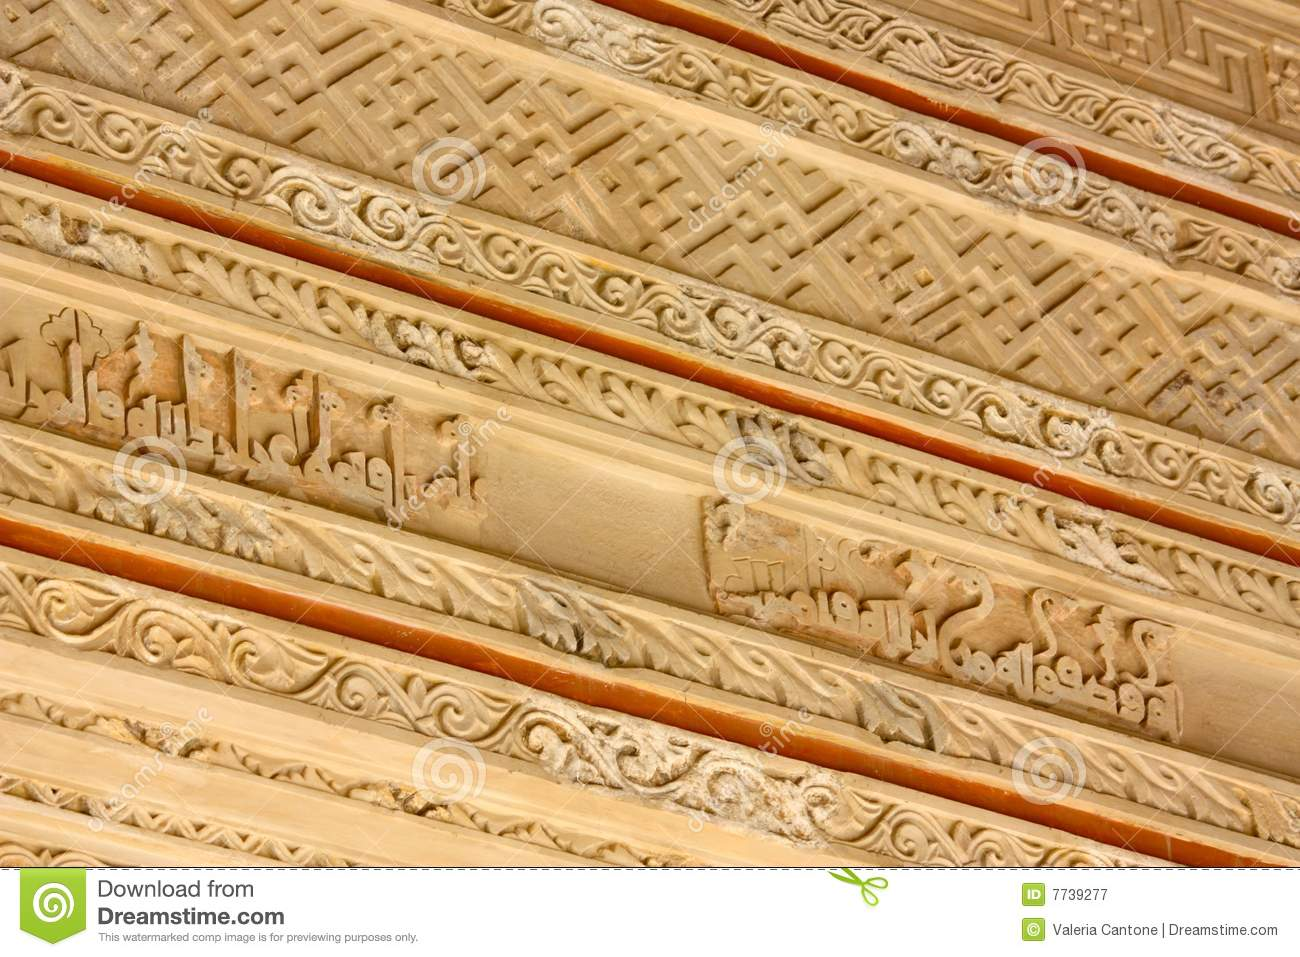 Islamic Art Near Cordoba, Spain Royalty Free Stock Photography.